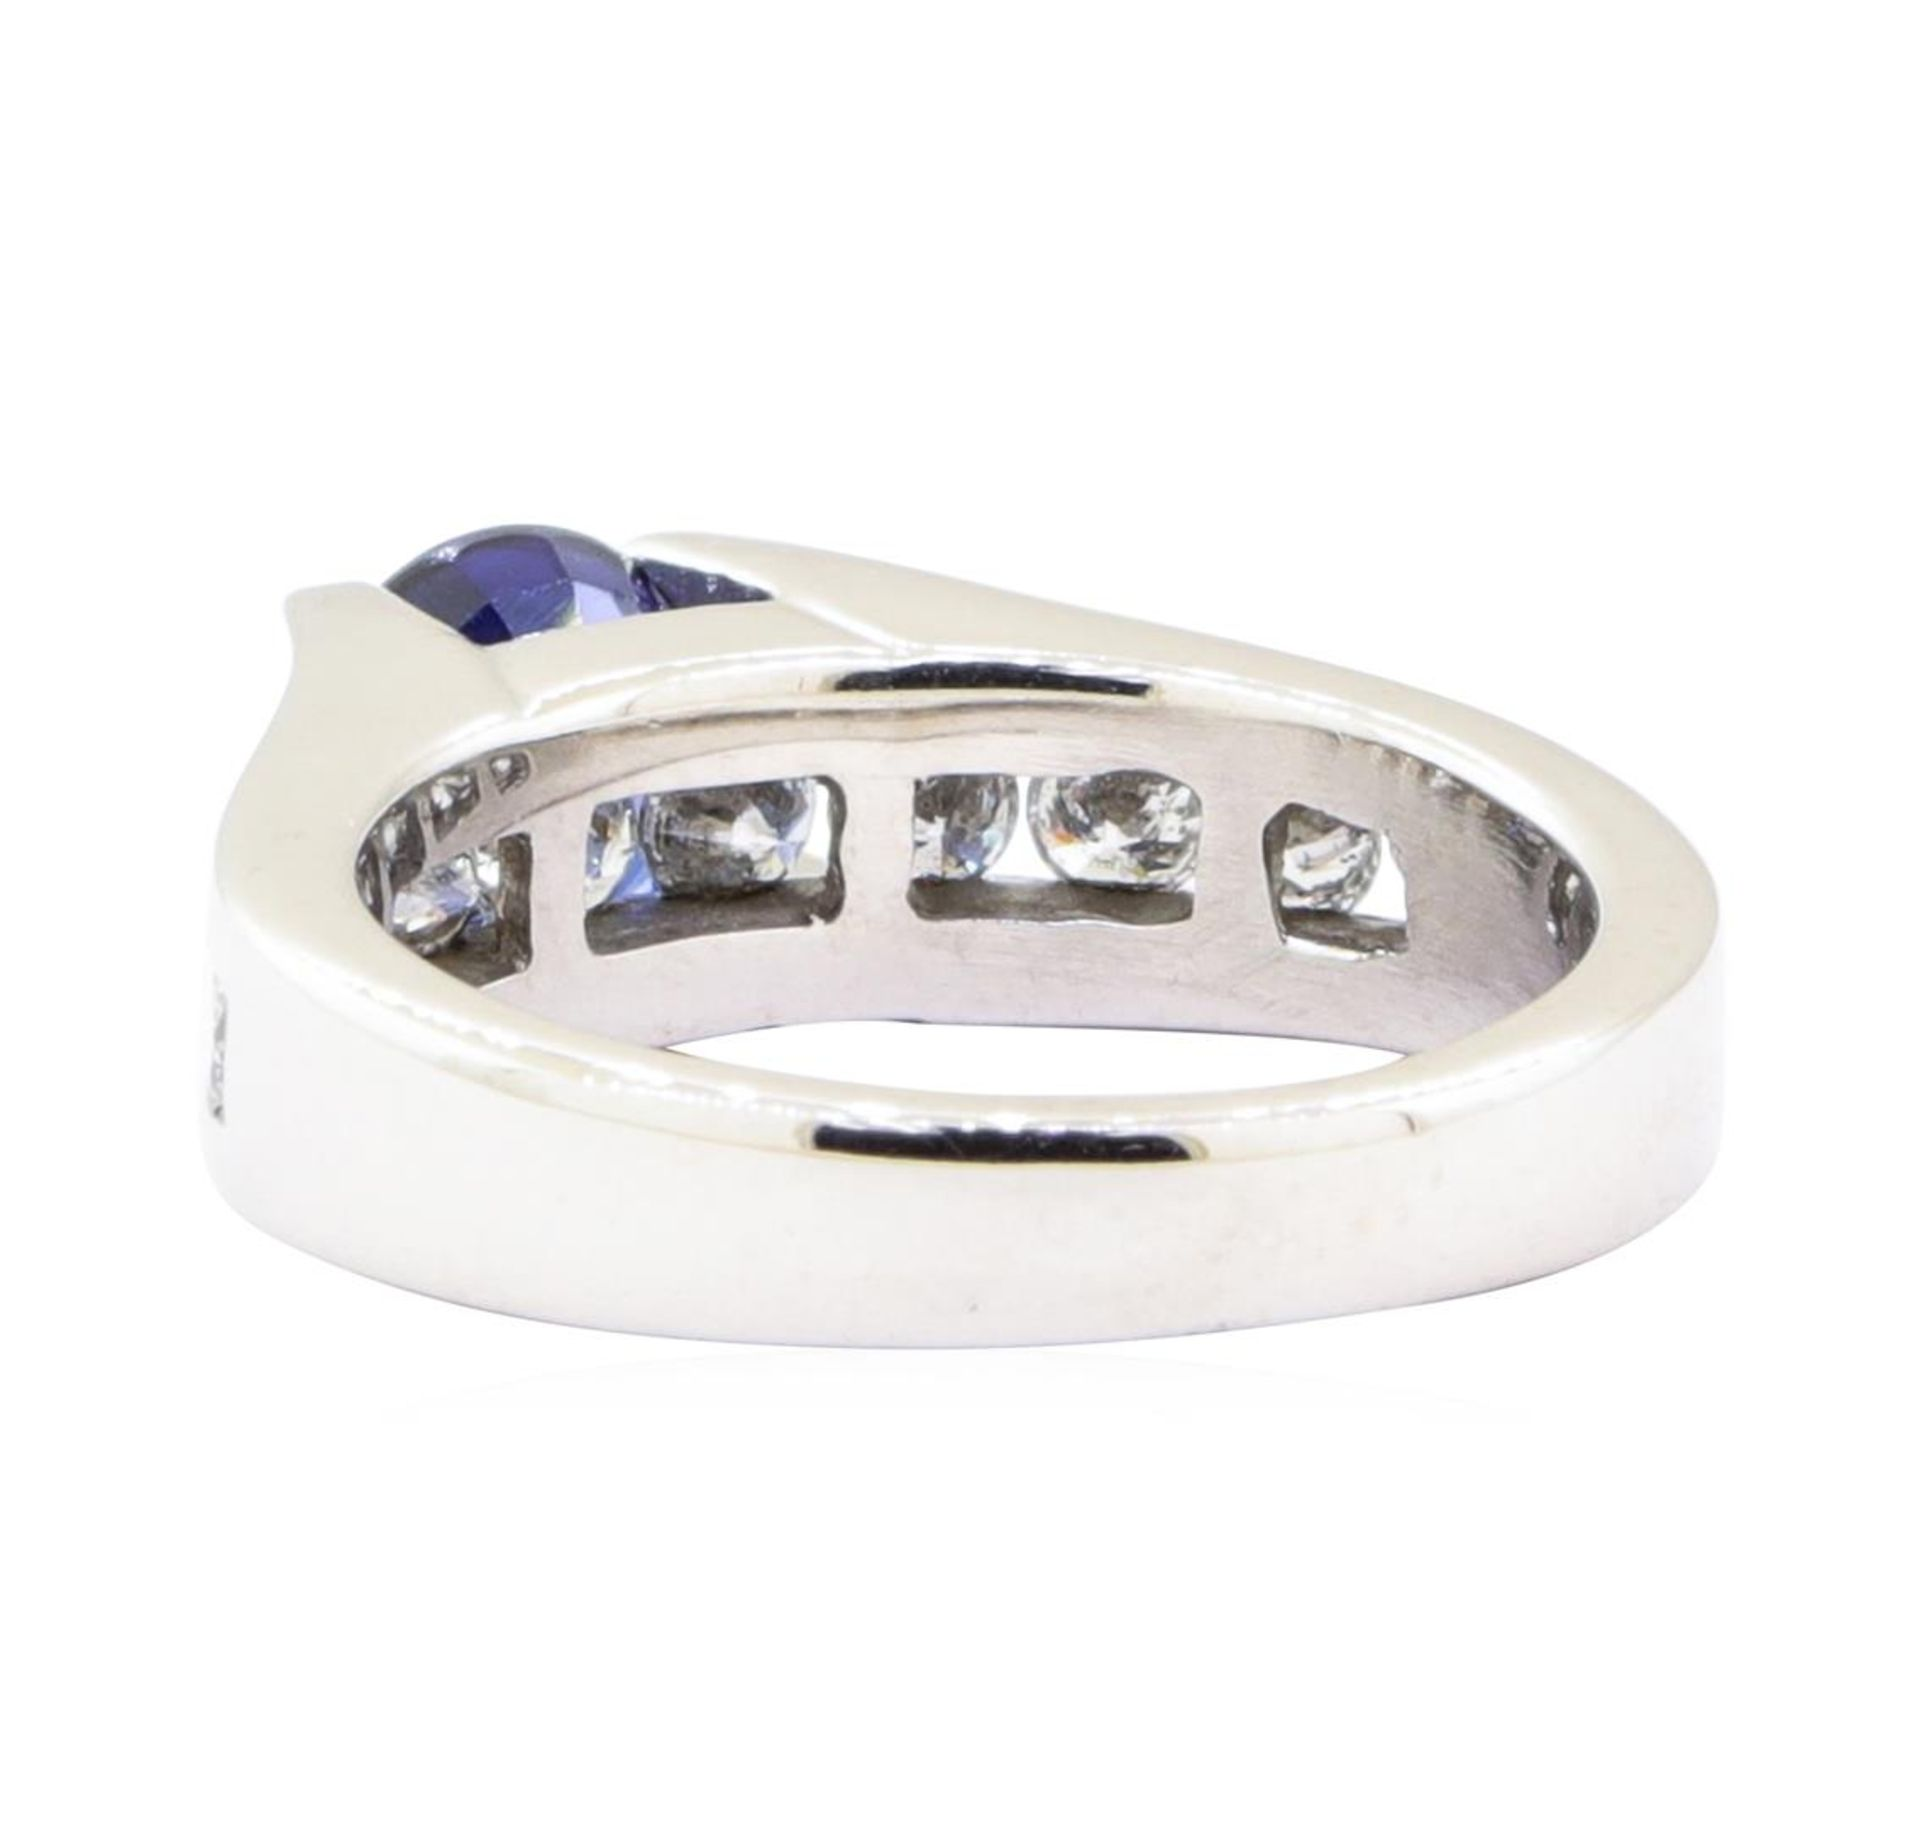 2.05ctw Sapphire and Diamond Ring - 14KT White Gold - Image 3 of 4